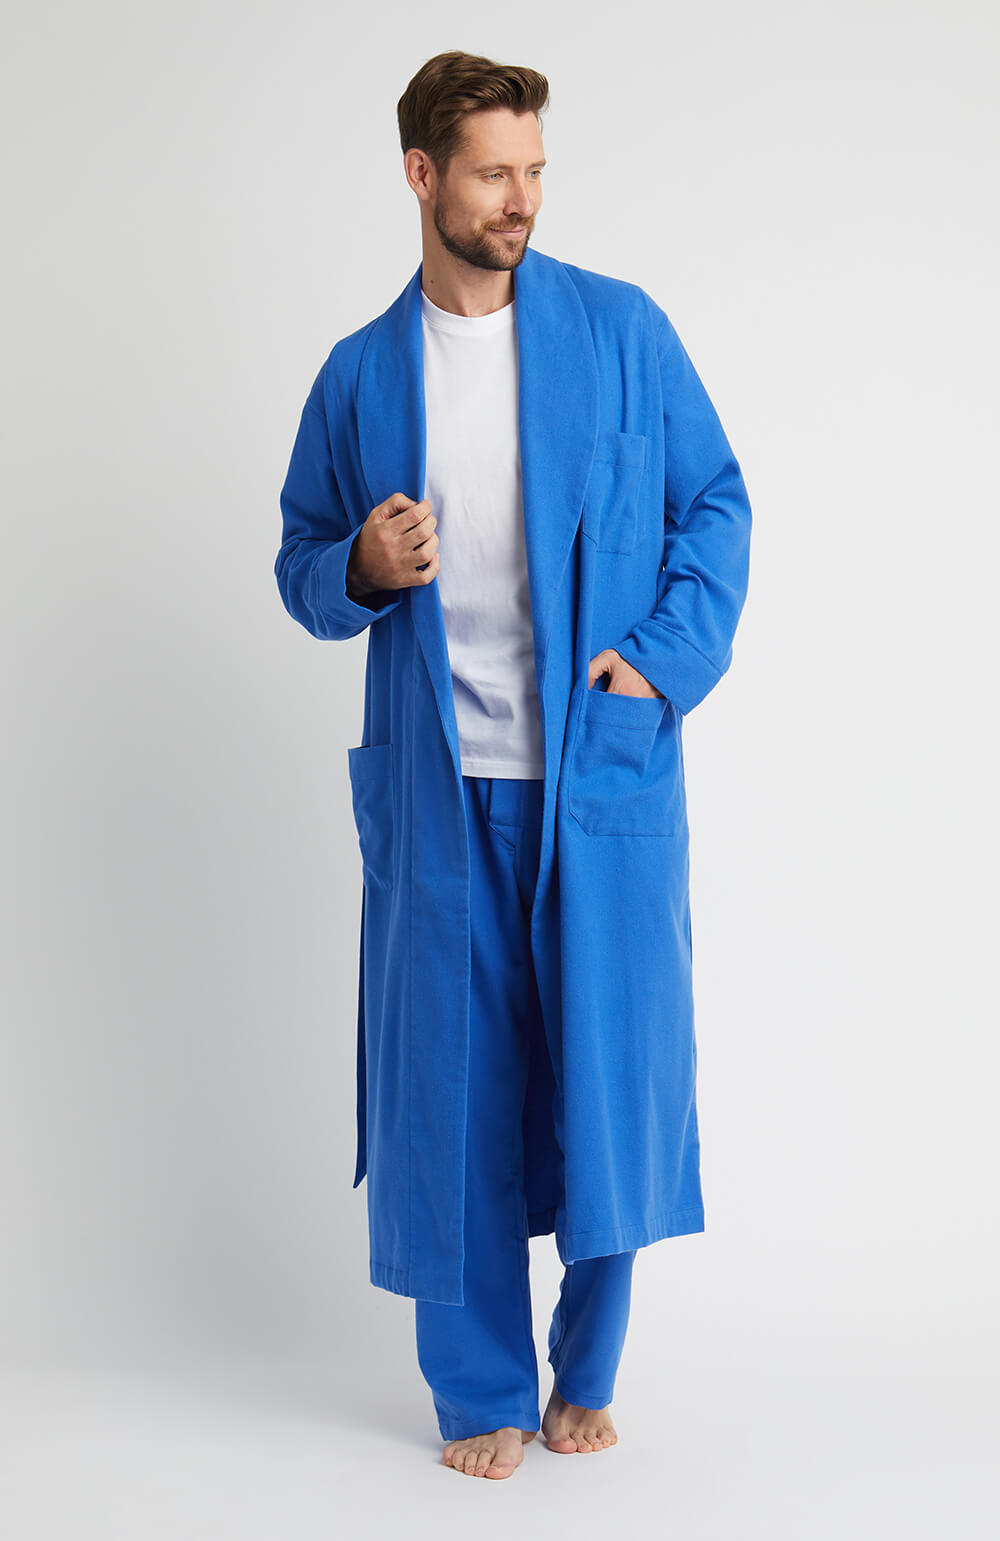 Brushed Cotton Gown (jmdg) - Bright Blue | Bonsoir of London